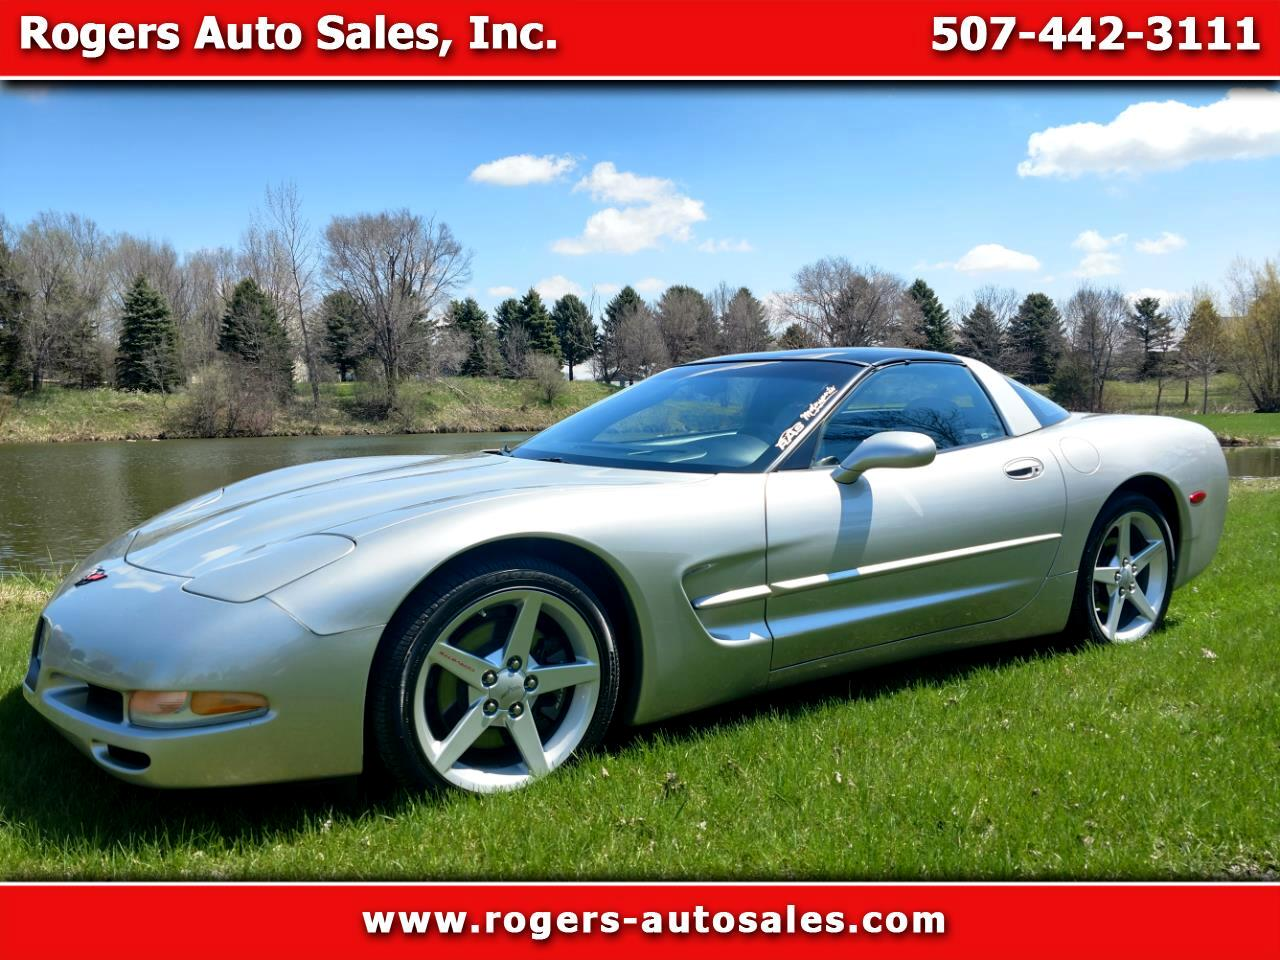 2004 Chevrolet Corvette Coupe LS1 with Magnetic Ride Control and Heads Up